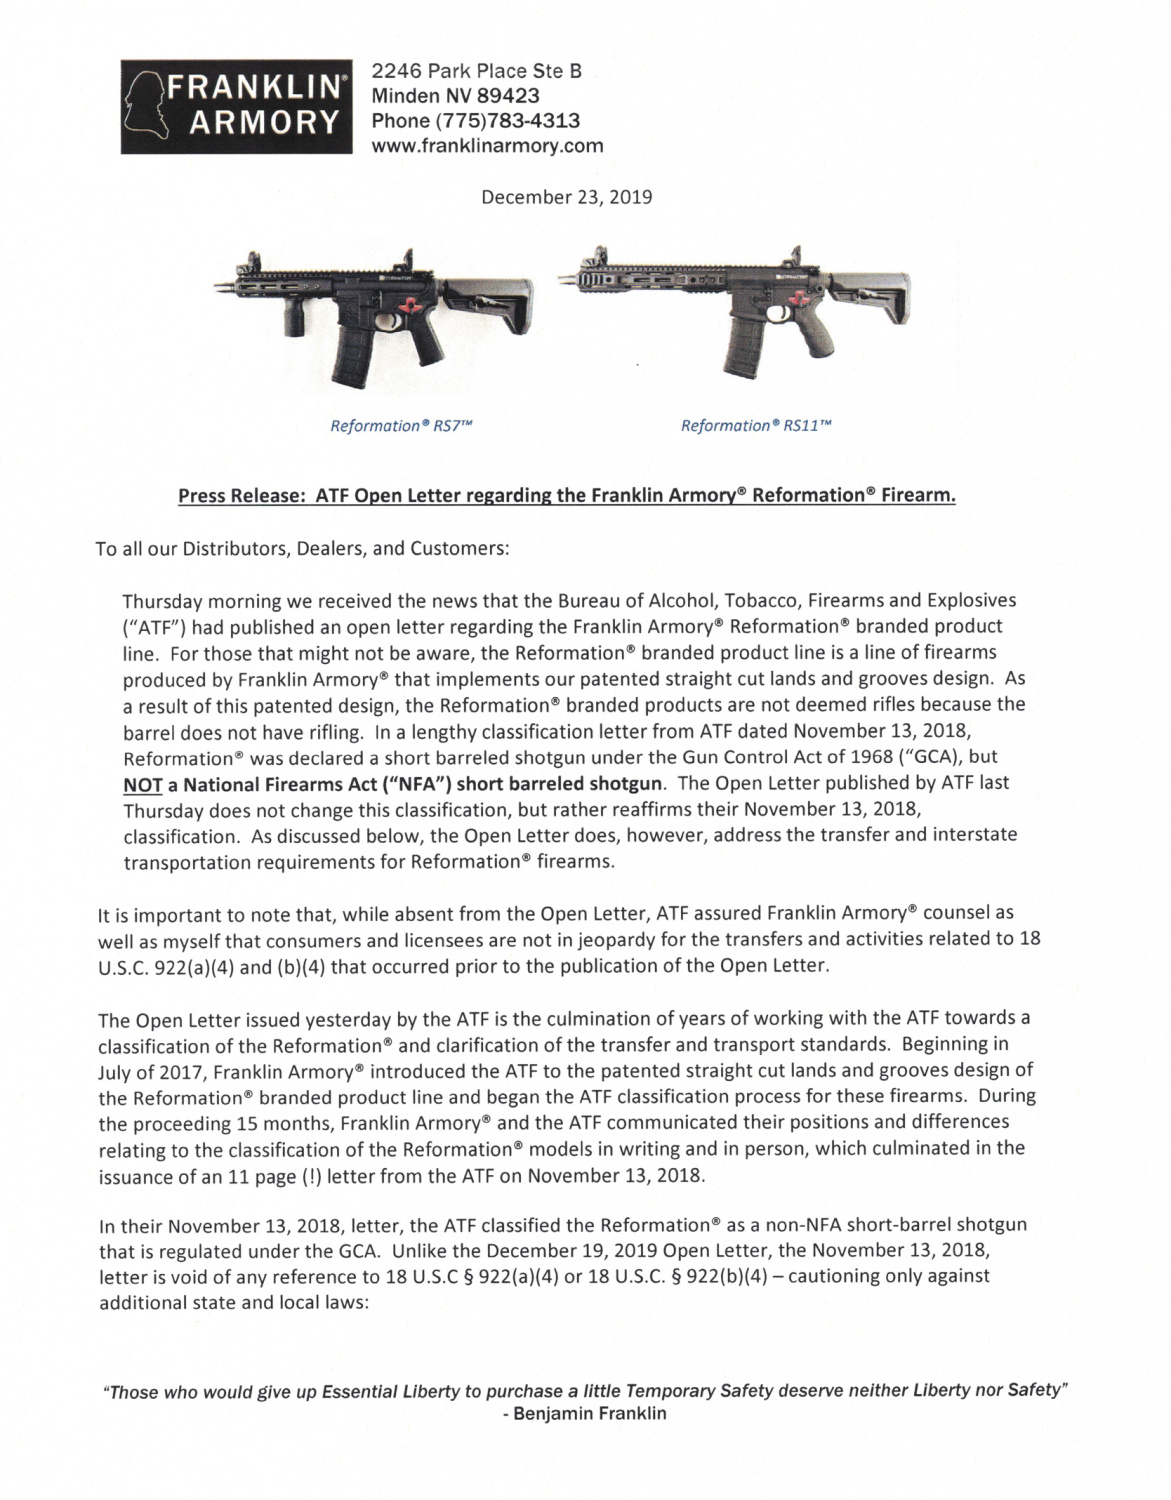 Franklin Armory Responds To ATF Open Letter On The Reformation